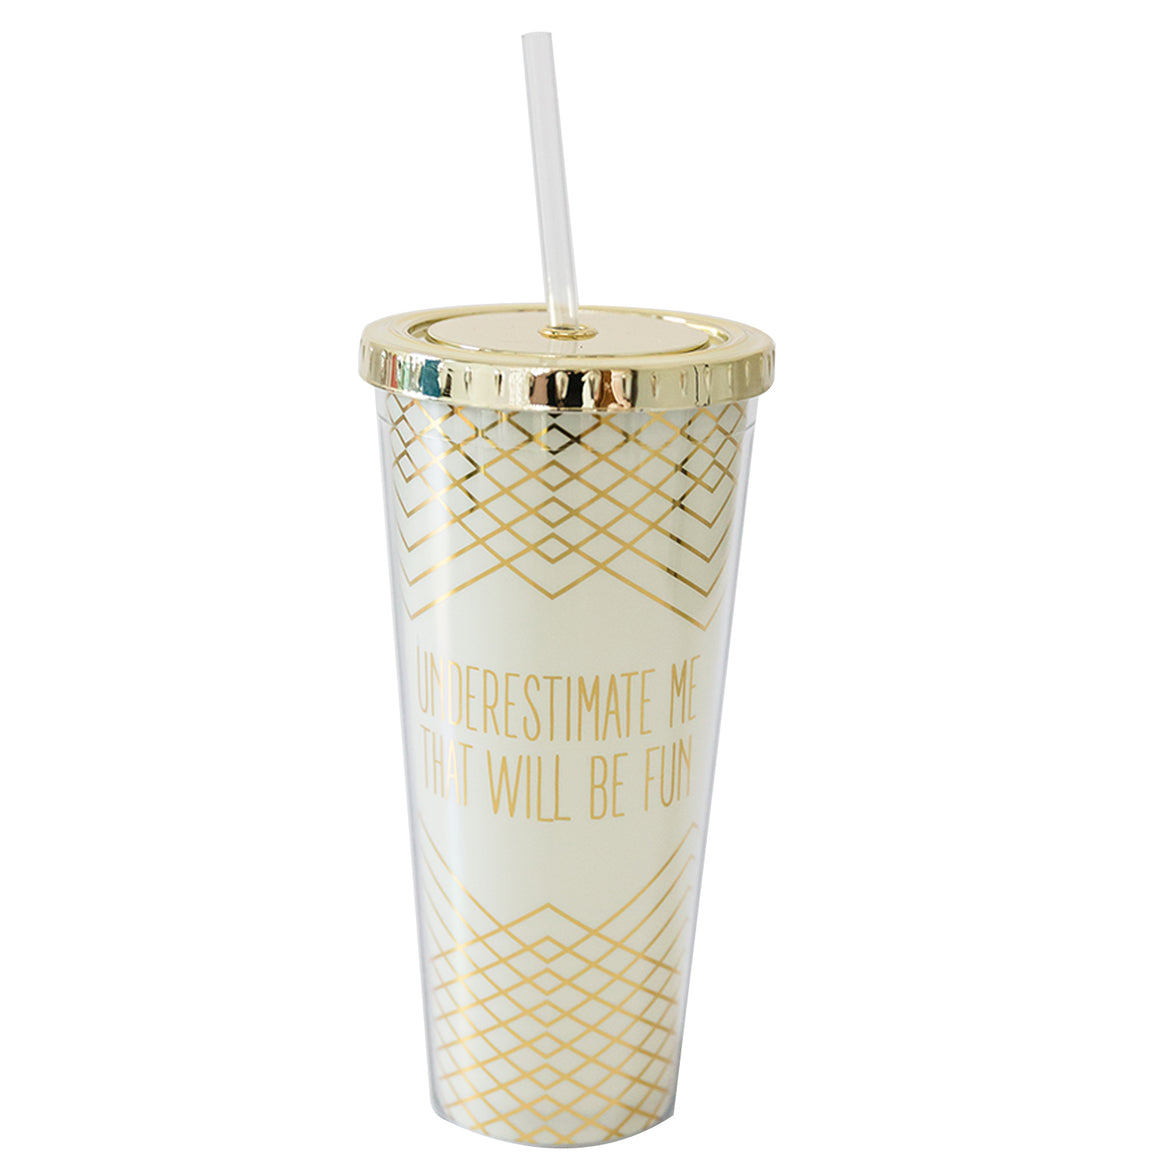 Straw Tumbler Underestimate me, that will be fun